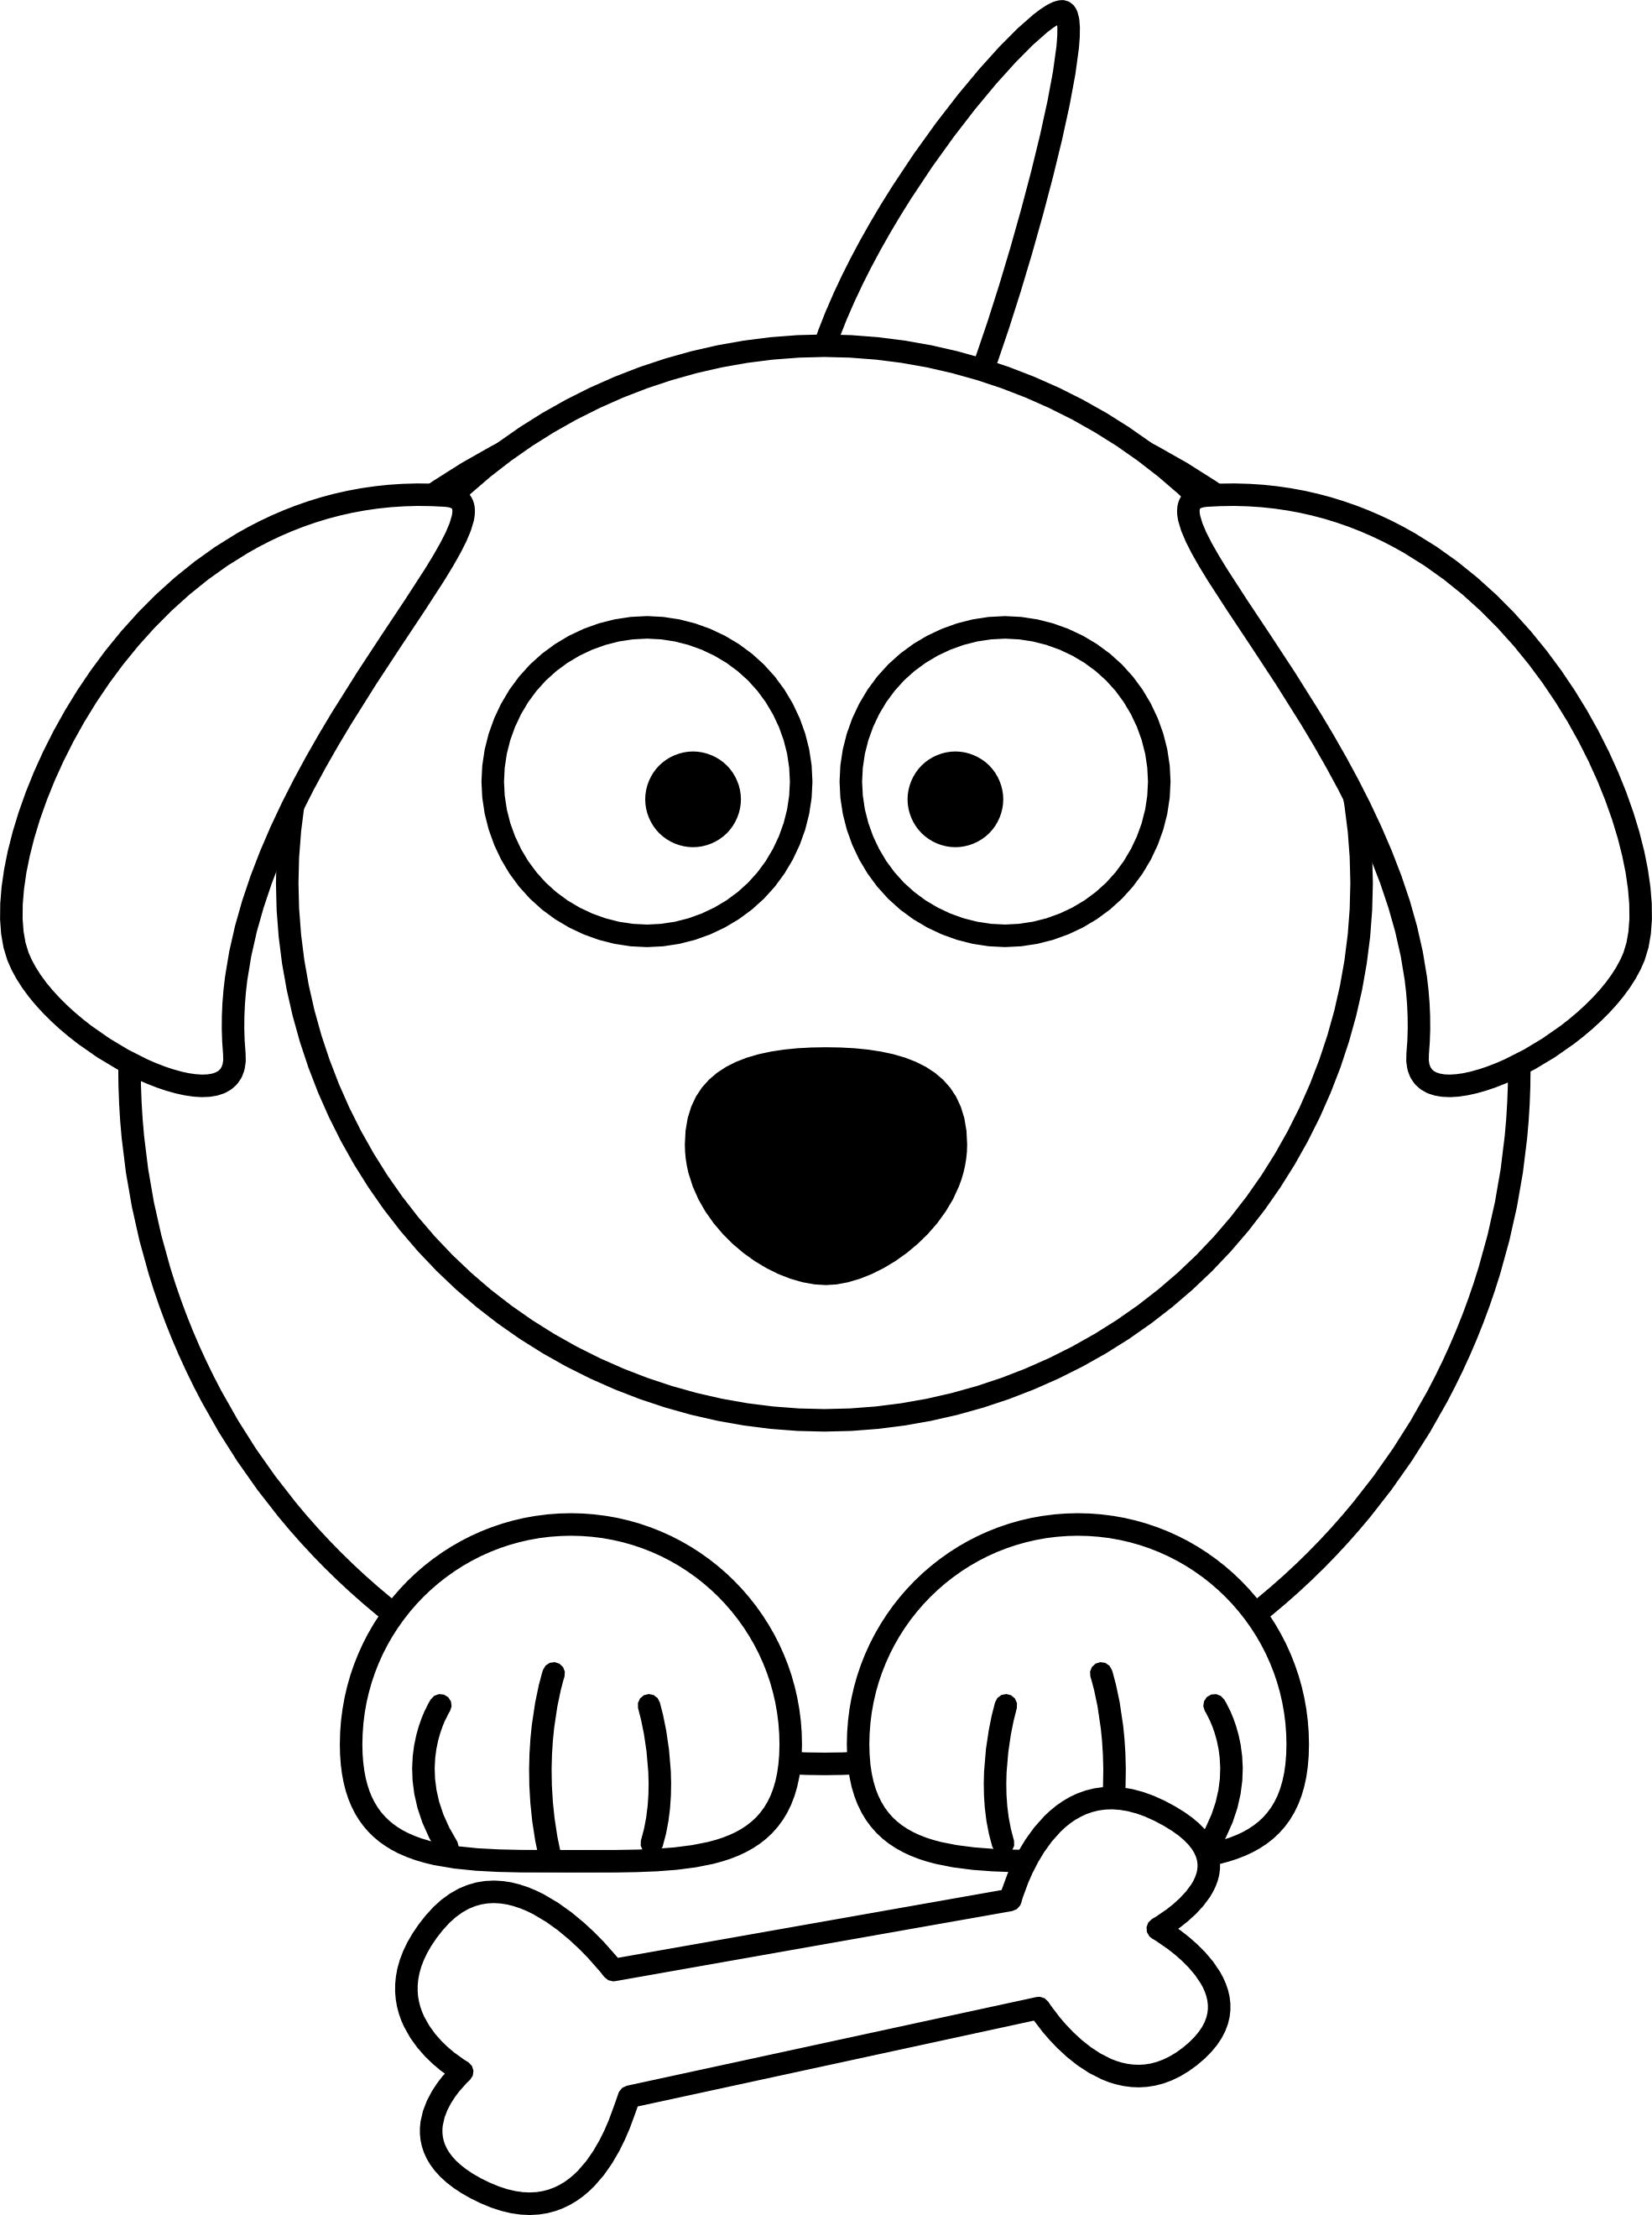 Line Drawing Of A Dog S Face : Dog line drawings clipart best